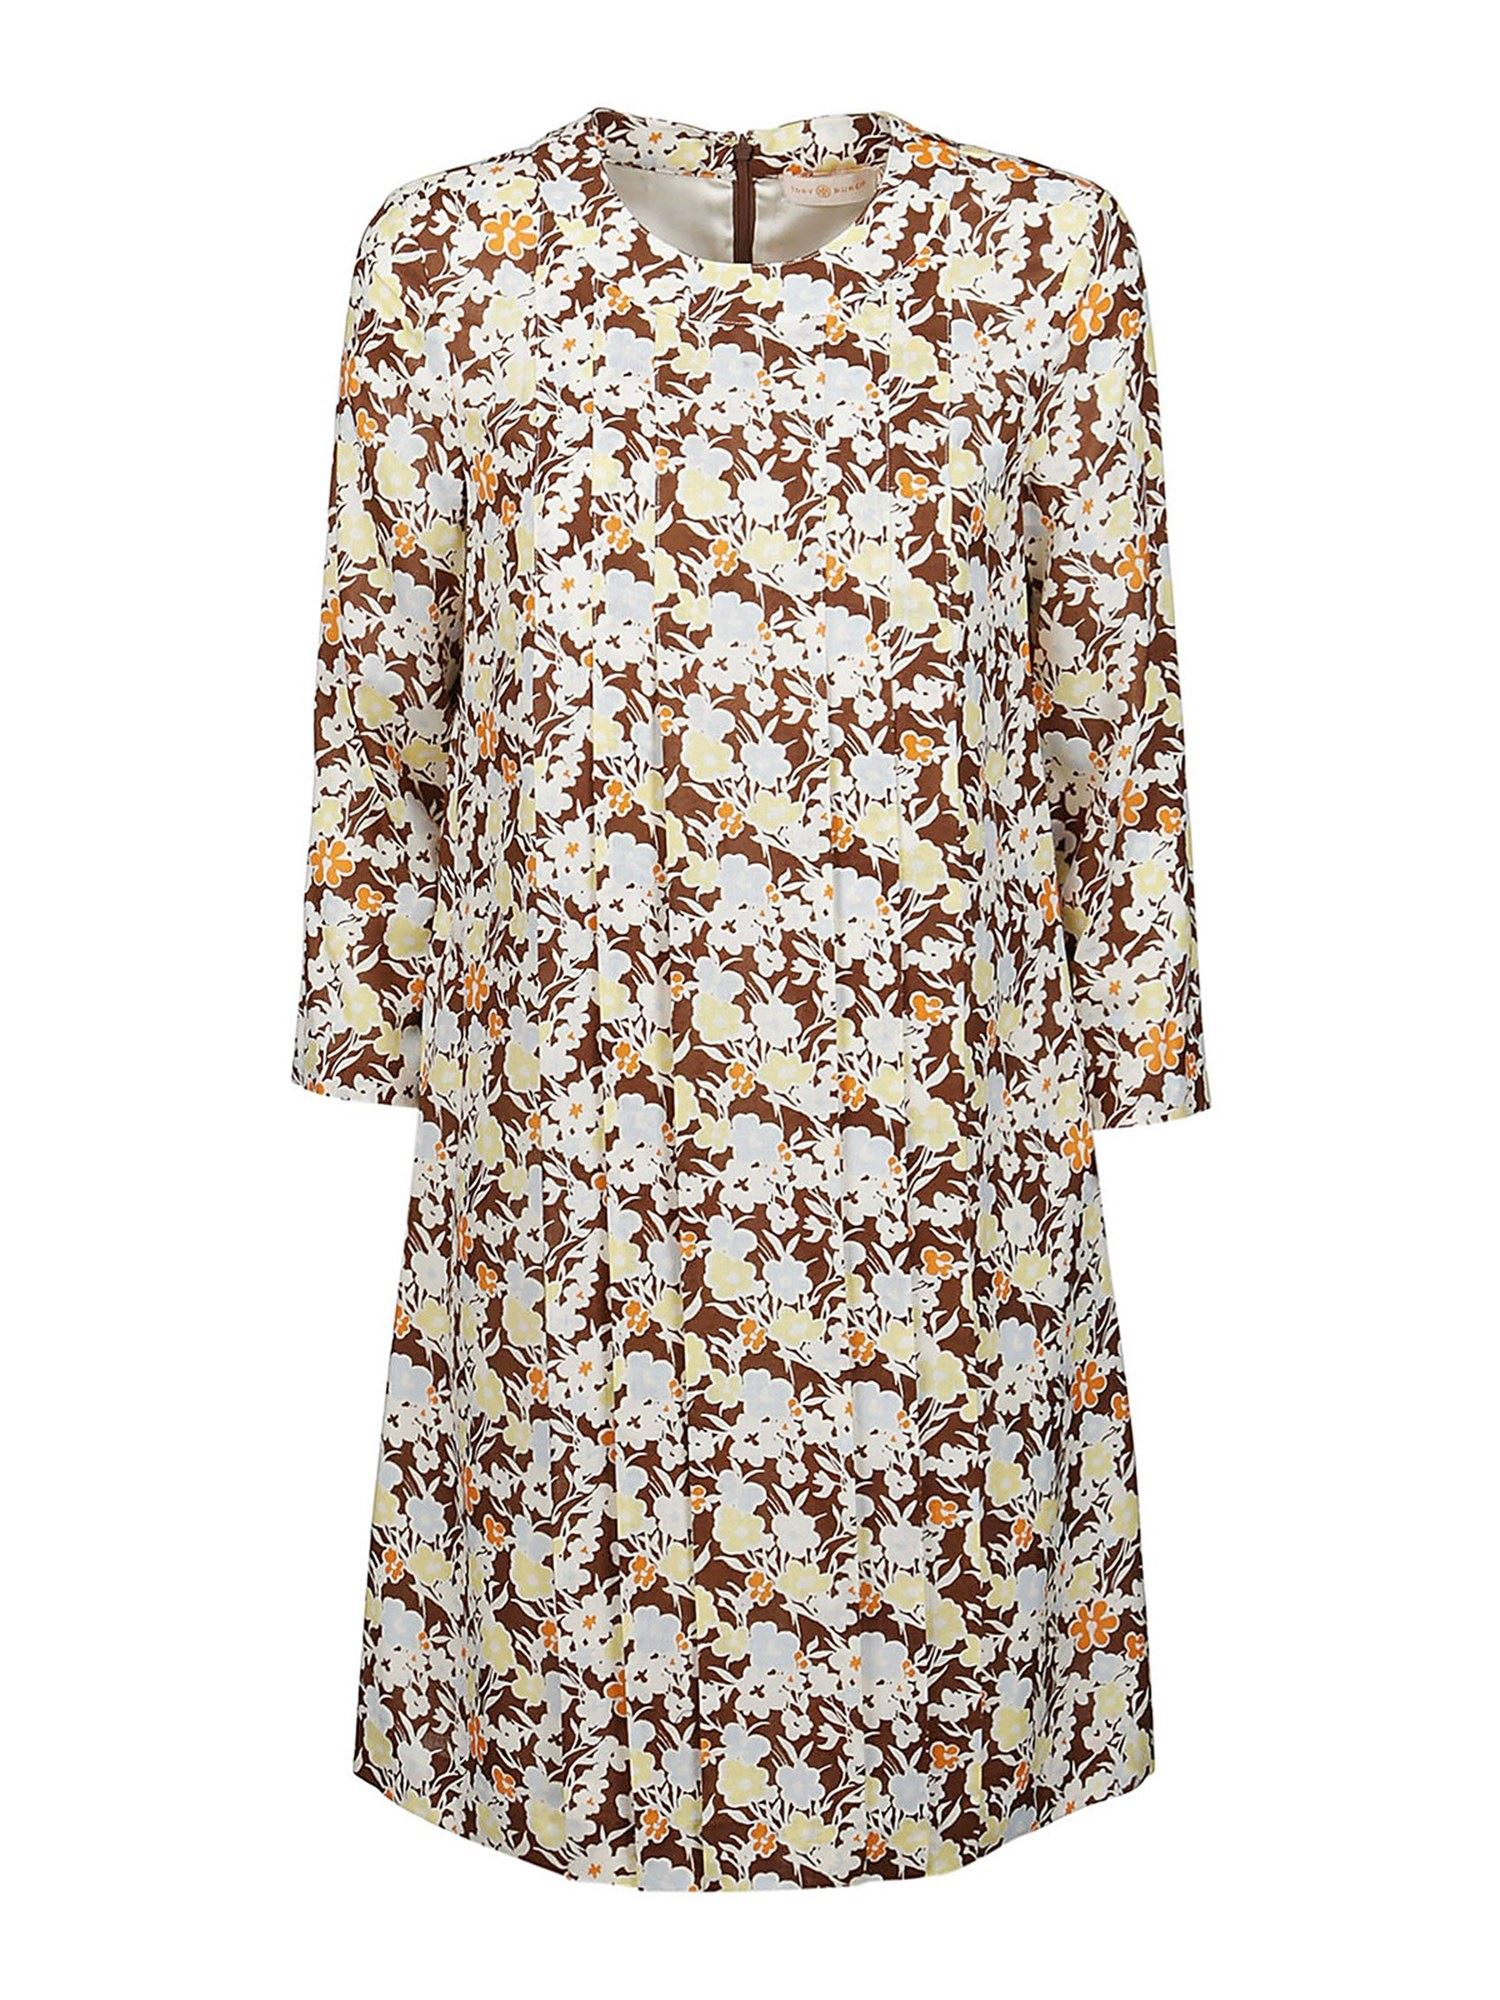 Tory Burch Mini dresses FLORAL PRINTED DRESS IN MULTICOLOR